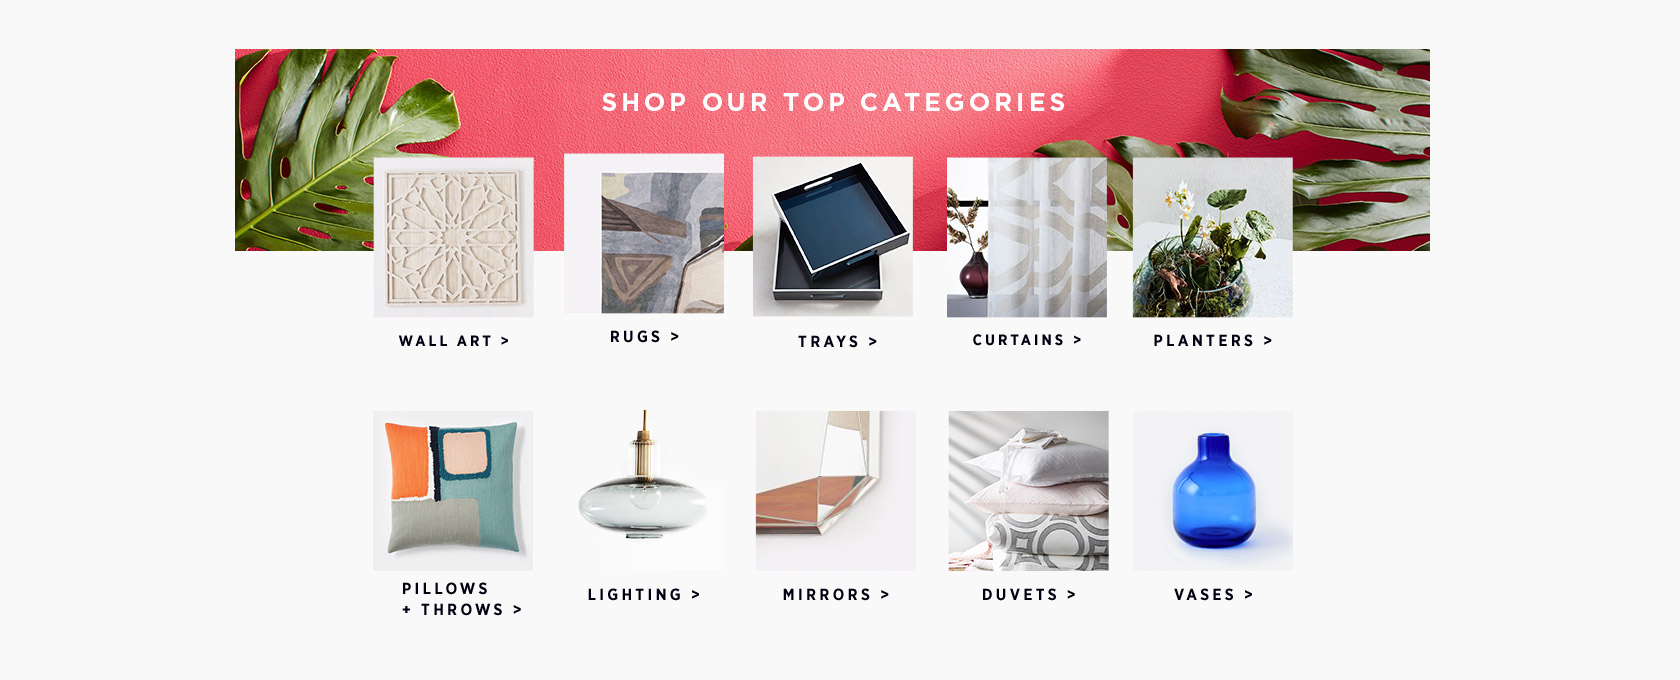 Shop Our Top Categories